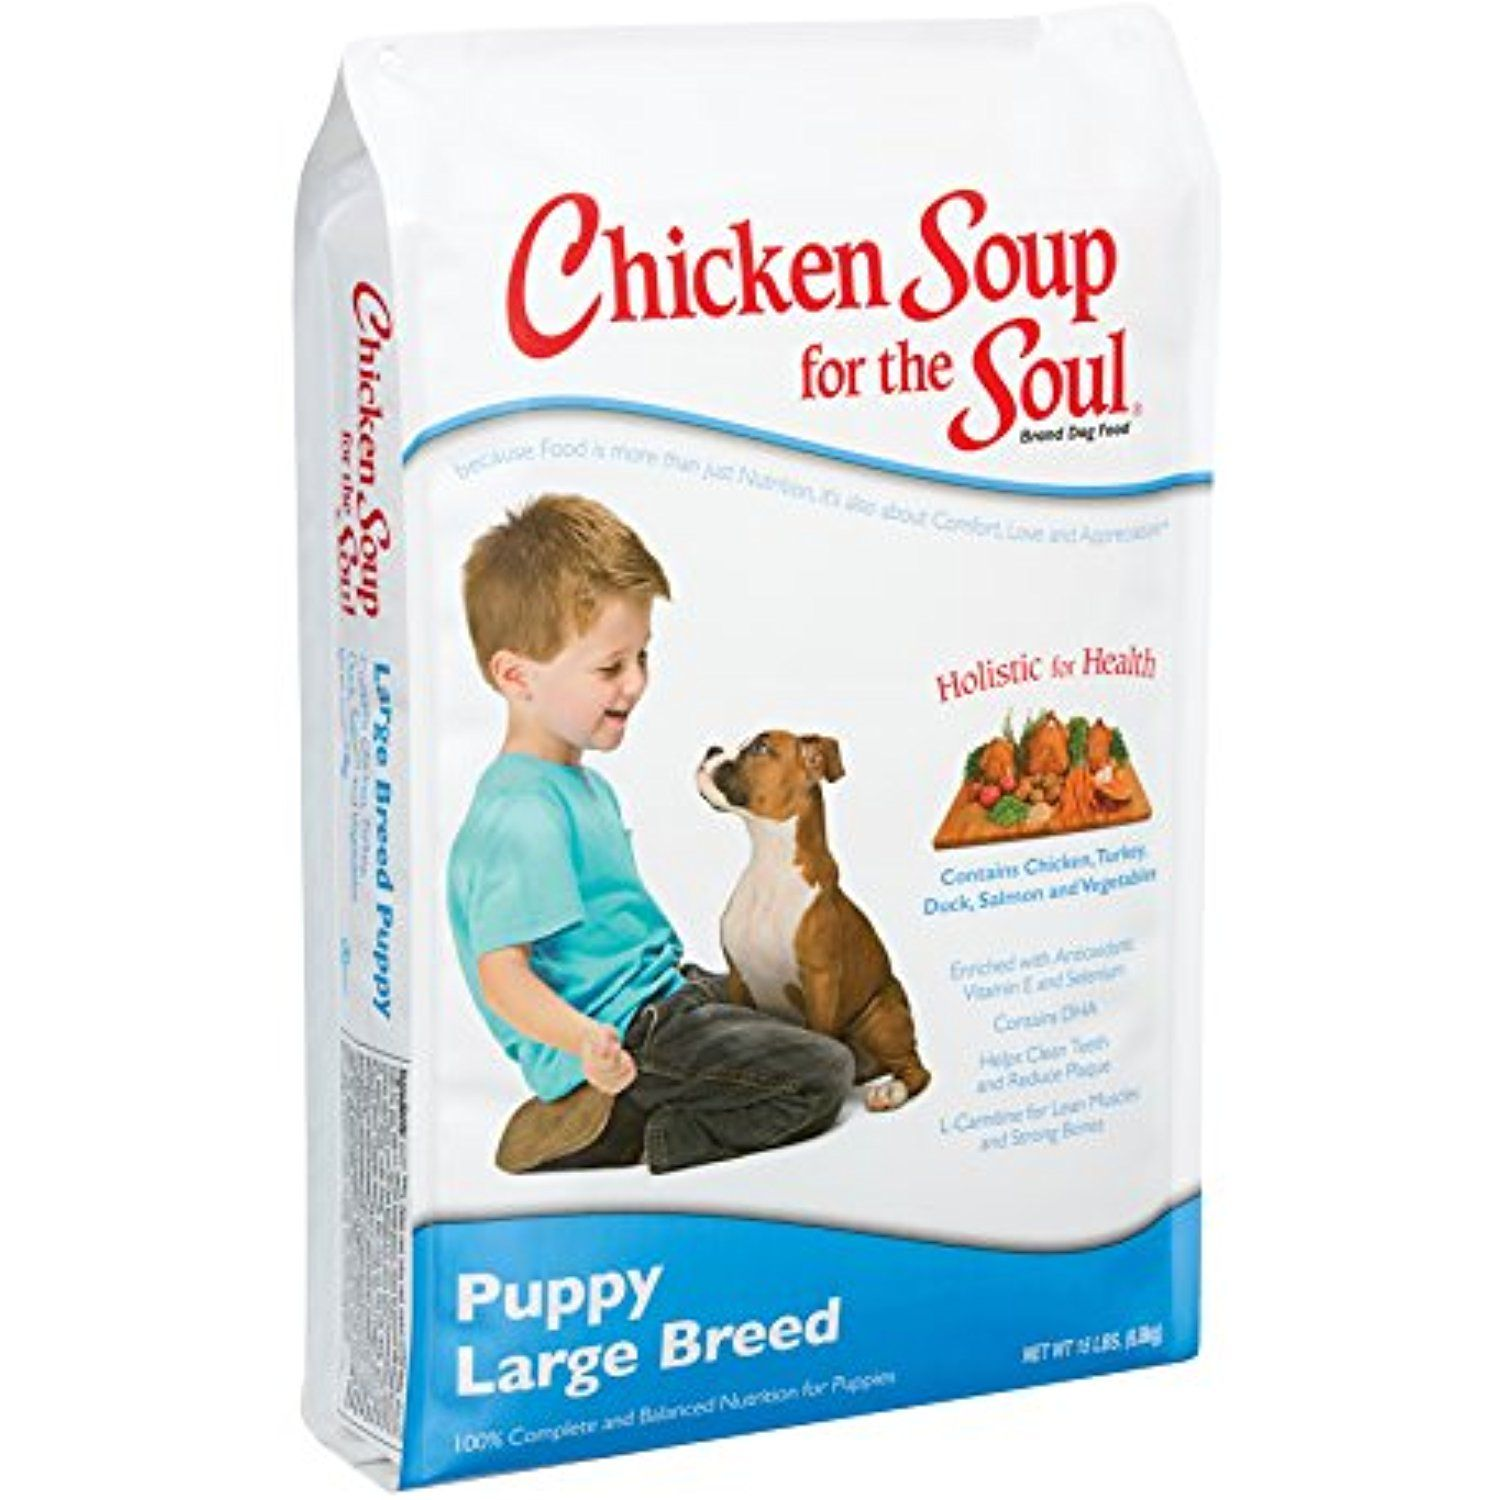 Chicken Soup for the Soul Large Breed Puppy 30lb You